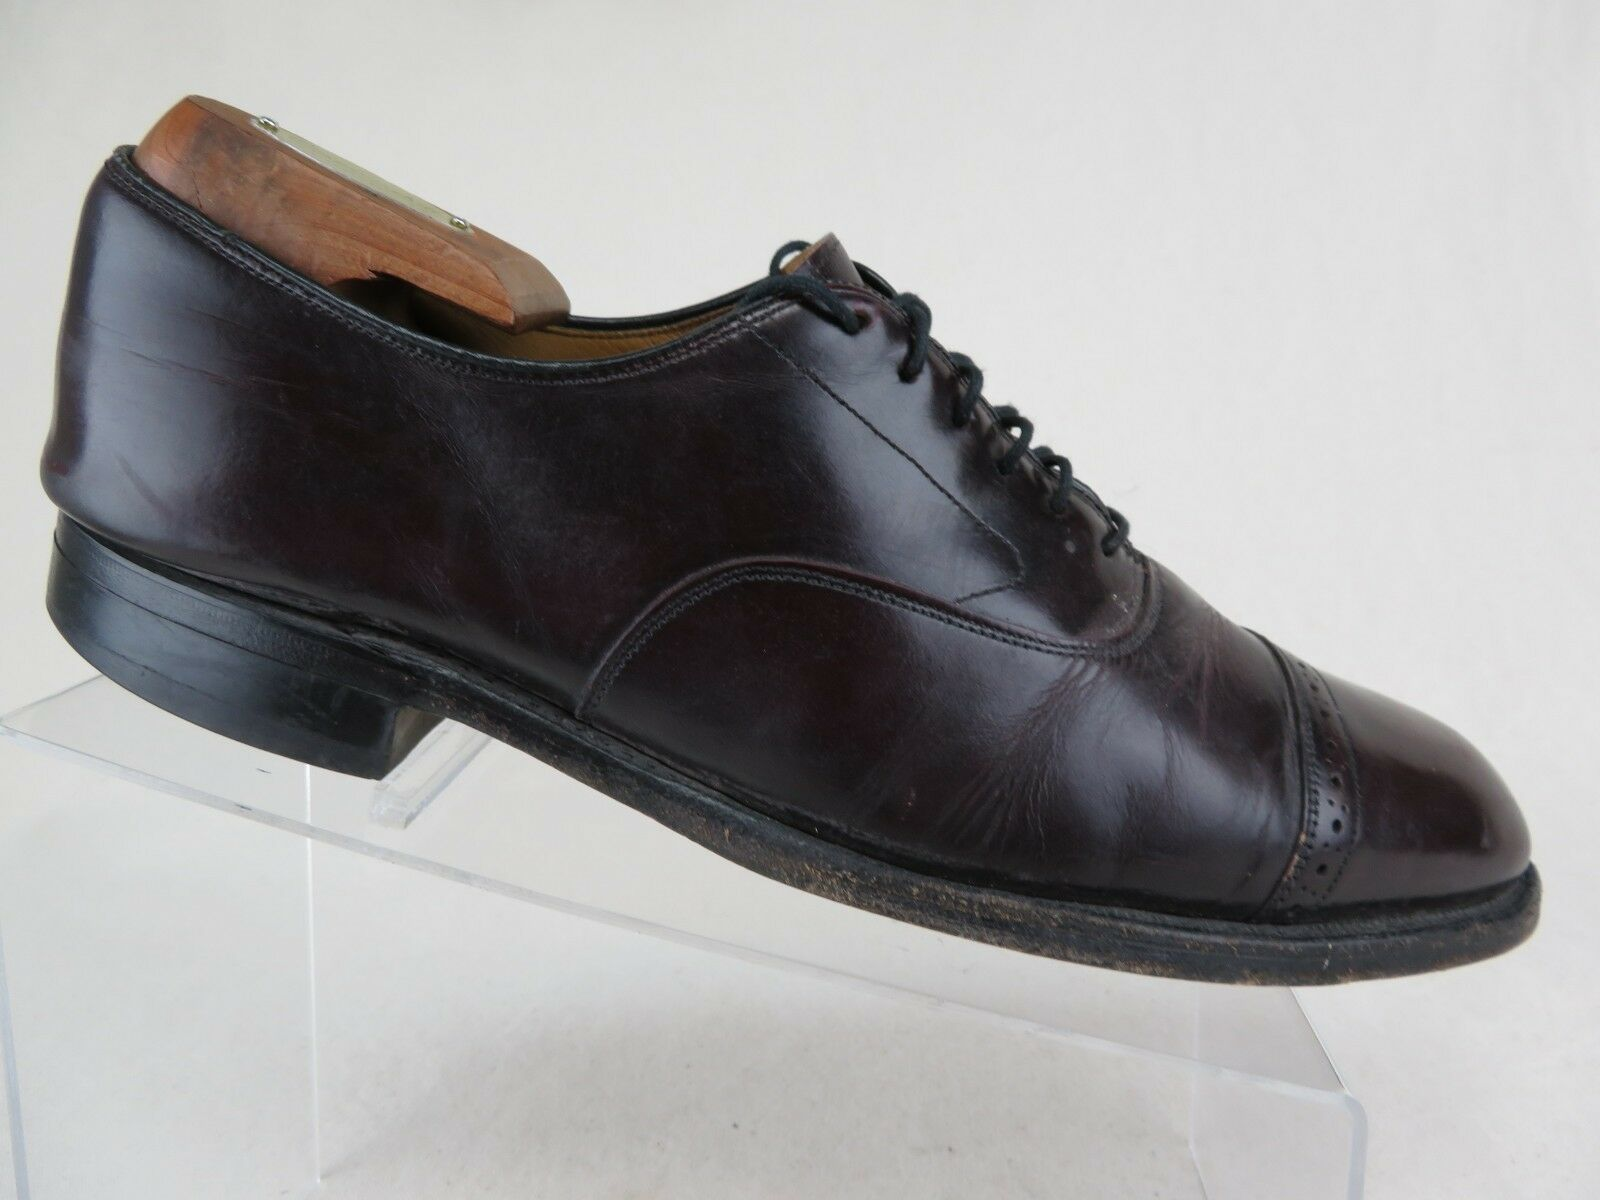 JOHNSTON & MURPHY Cap-Toe Cordovan Sz 9.5 B 2A Men Dress shoes Oxfords